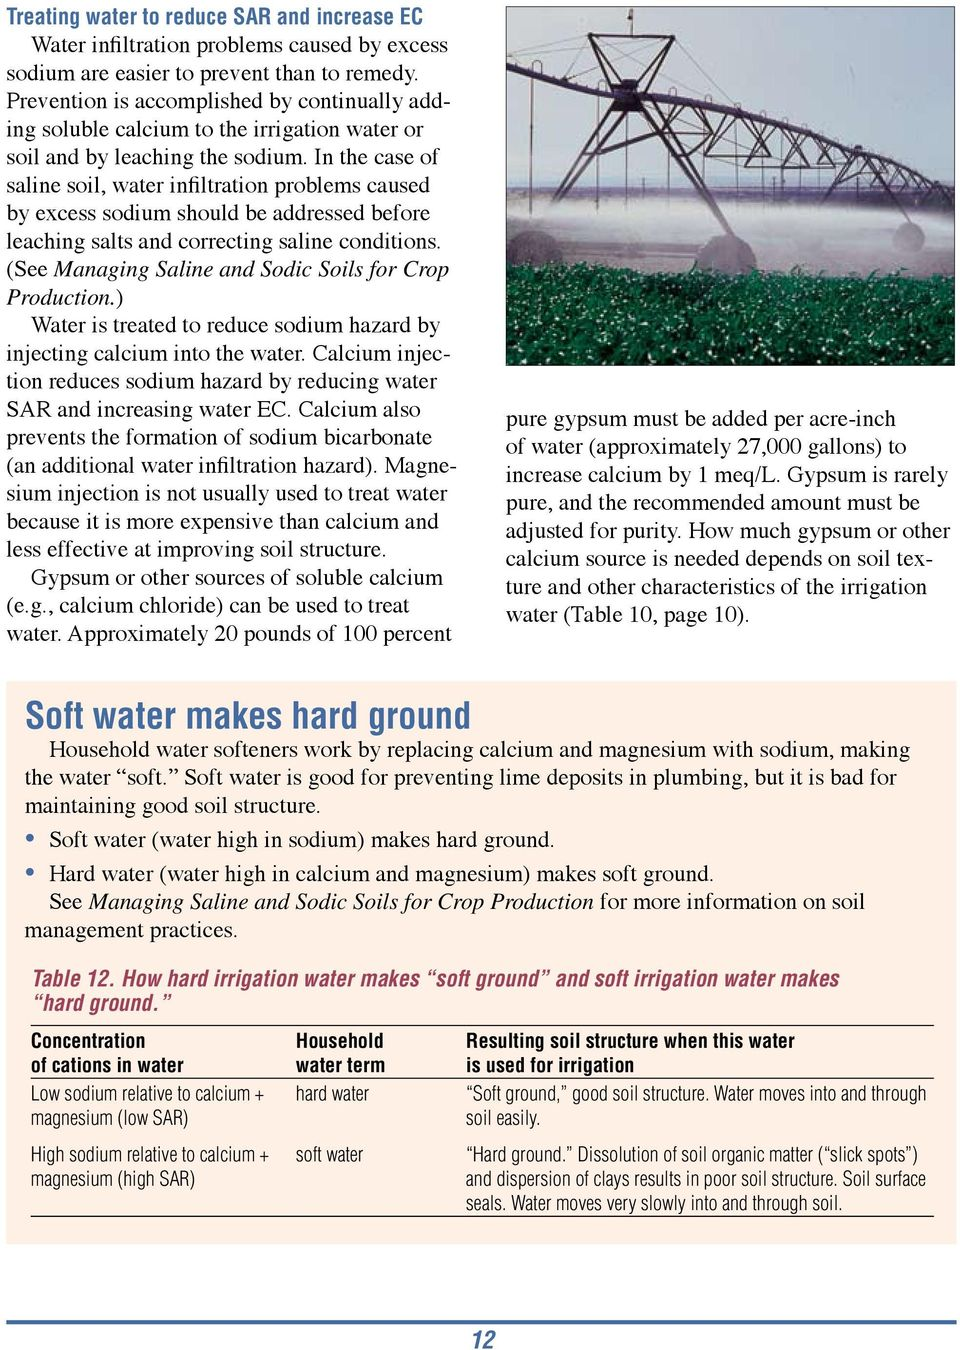 In the case of saline soil, water infiltration problems caused by excess sodium should be addressed before leaching salts and correcting saline conditions.